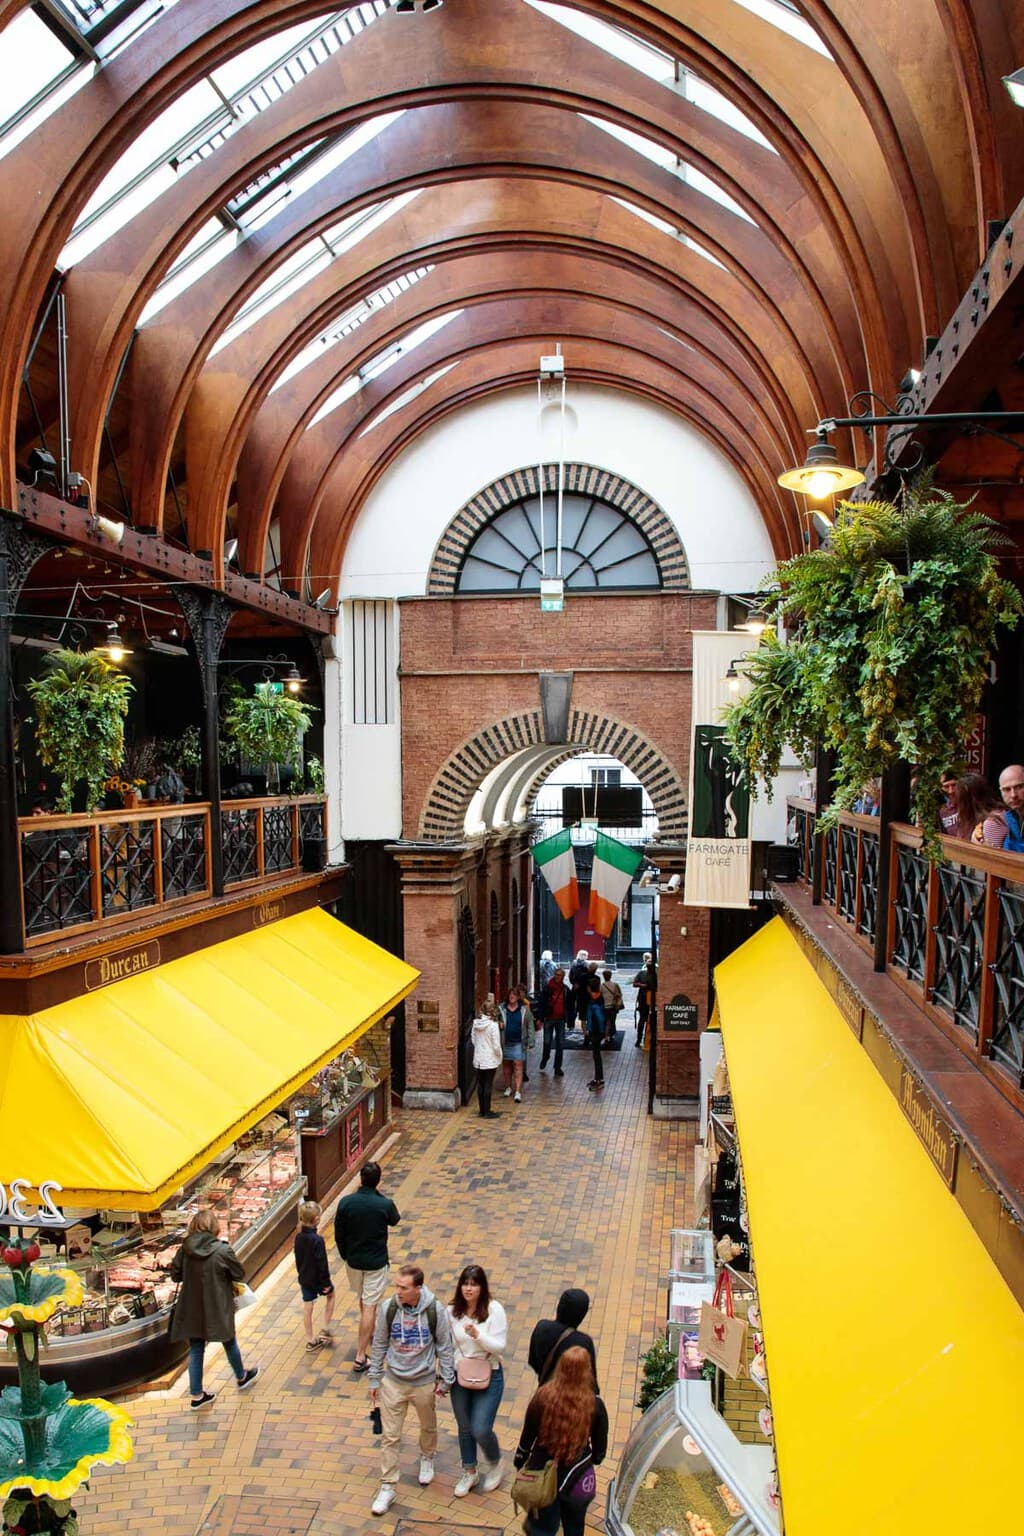 Photo of the main hall in the English Market in Cork.